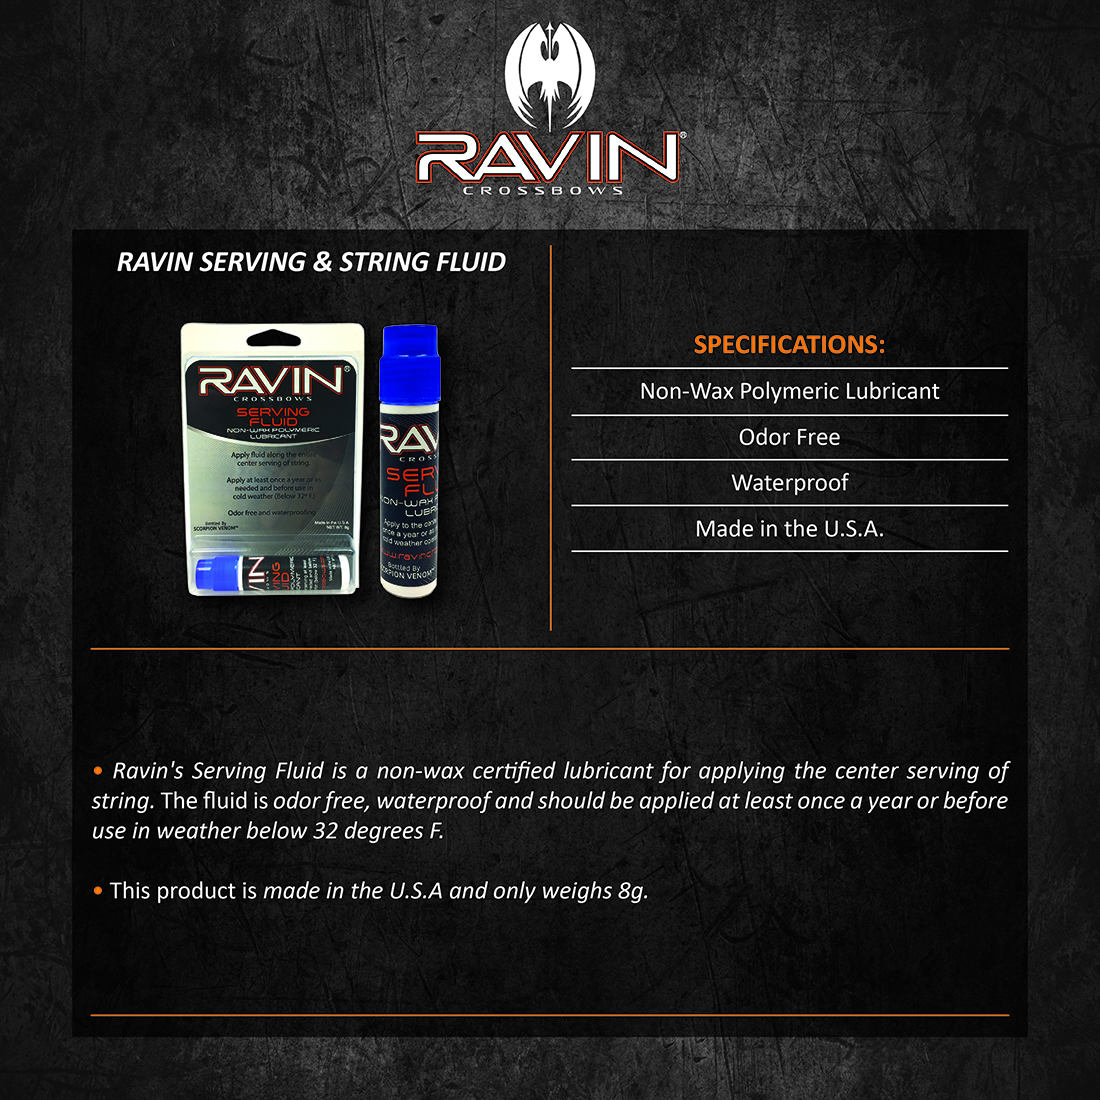 Ravin_Serving_and_String_Fluid_Product_Description